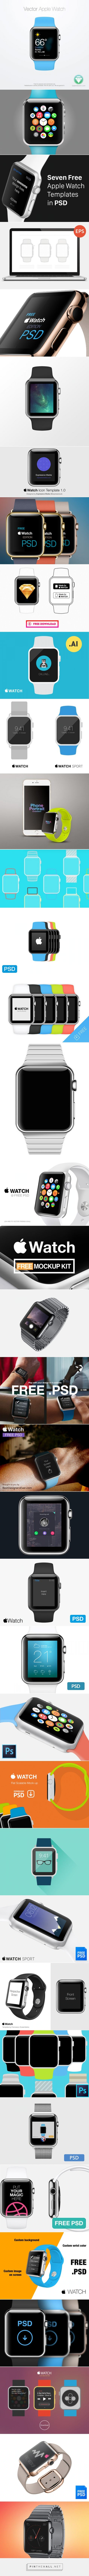 80+ Best Free Apple Watch Mockup Templates (Updated For Series 5) - 365 Web Resources